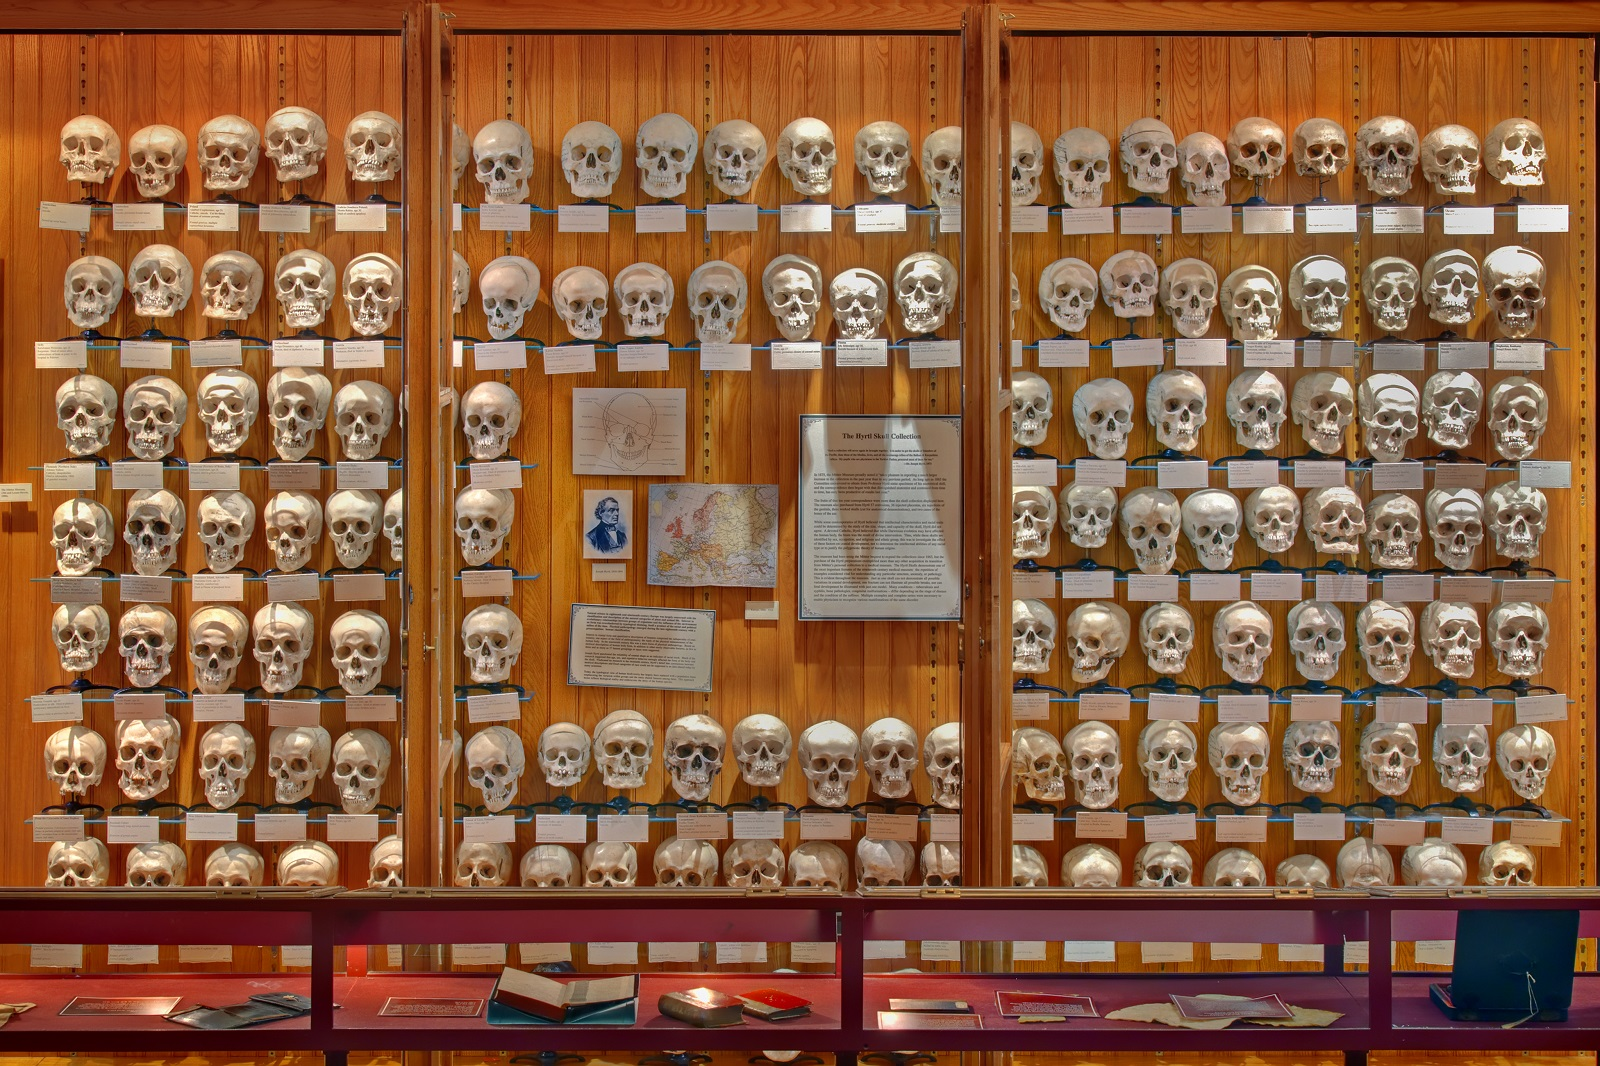 Museums Mutter Museum Philadelphia USA Informative Wall Of Skulls - Strangest museums in usa